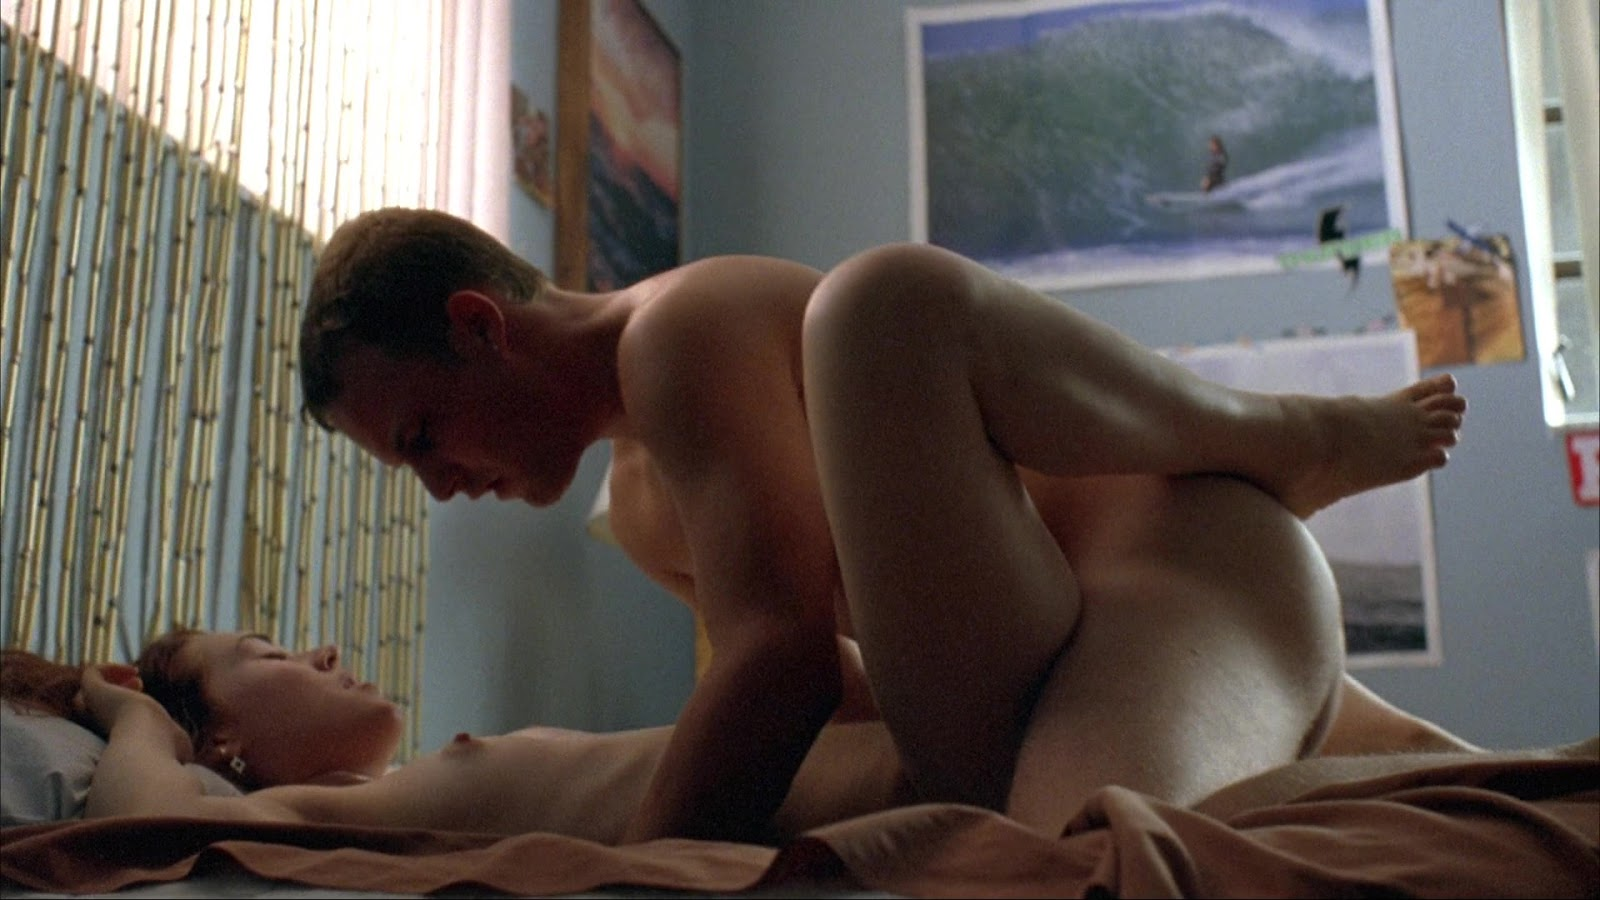 Hottest Real Scene Ever